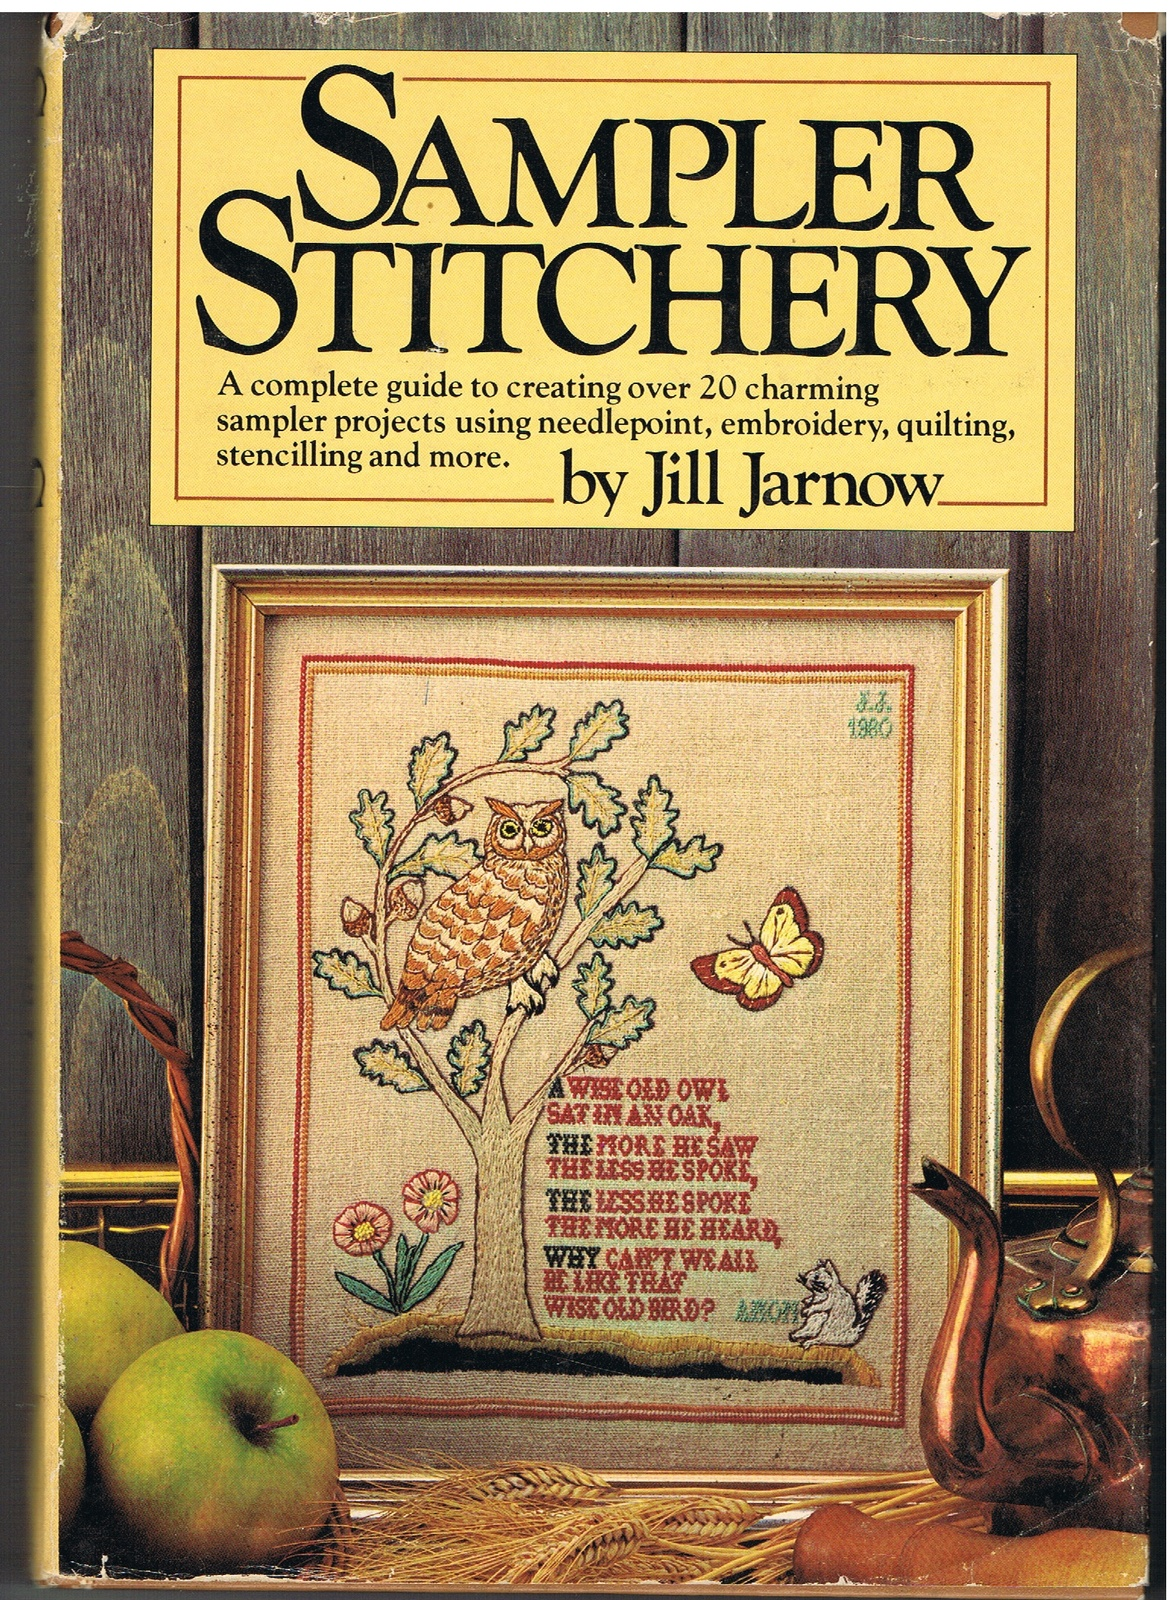 Sampler Stitchery by Jill Jarnow Book of Stitching Craft Projects